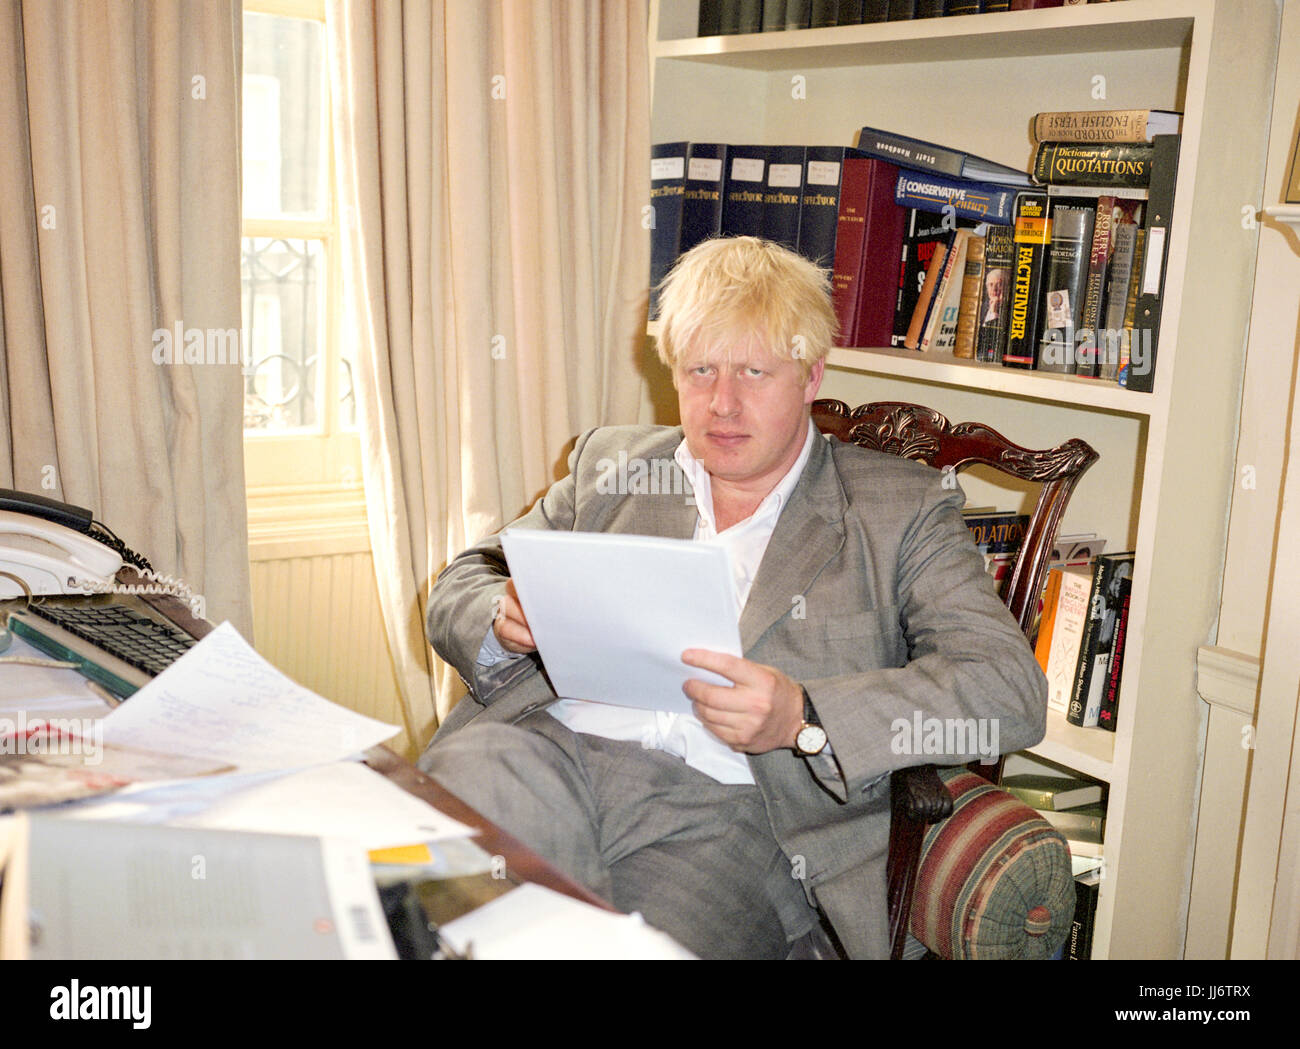 Boris Johnson conservative MP and editor of the Spectator magazine photographed in the Spectator magazine office - Stock Image